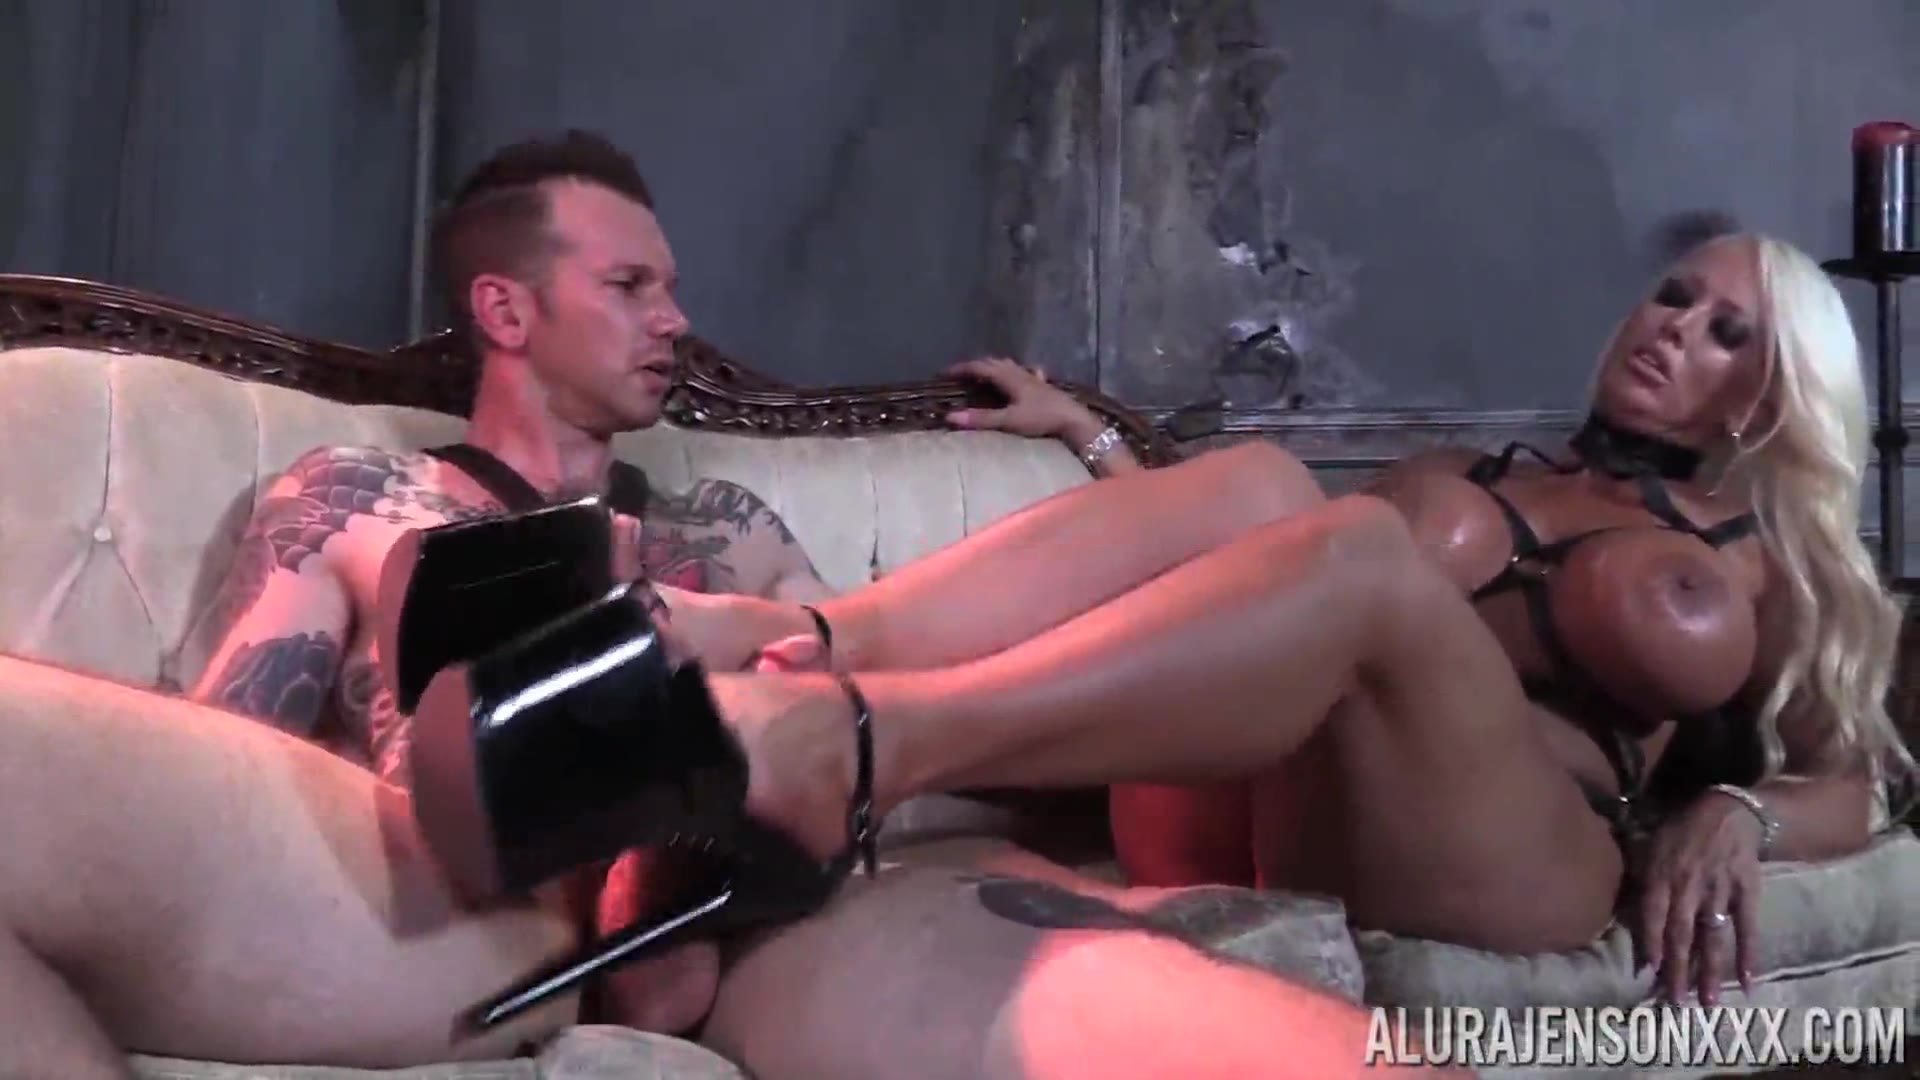 Free extreme anal sex shemale